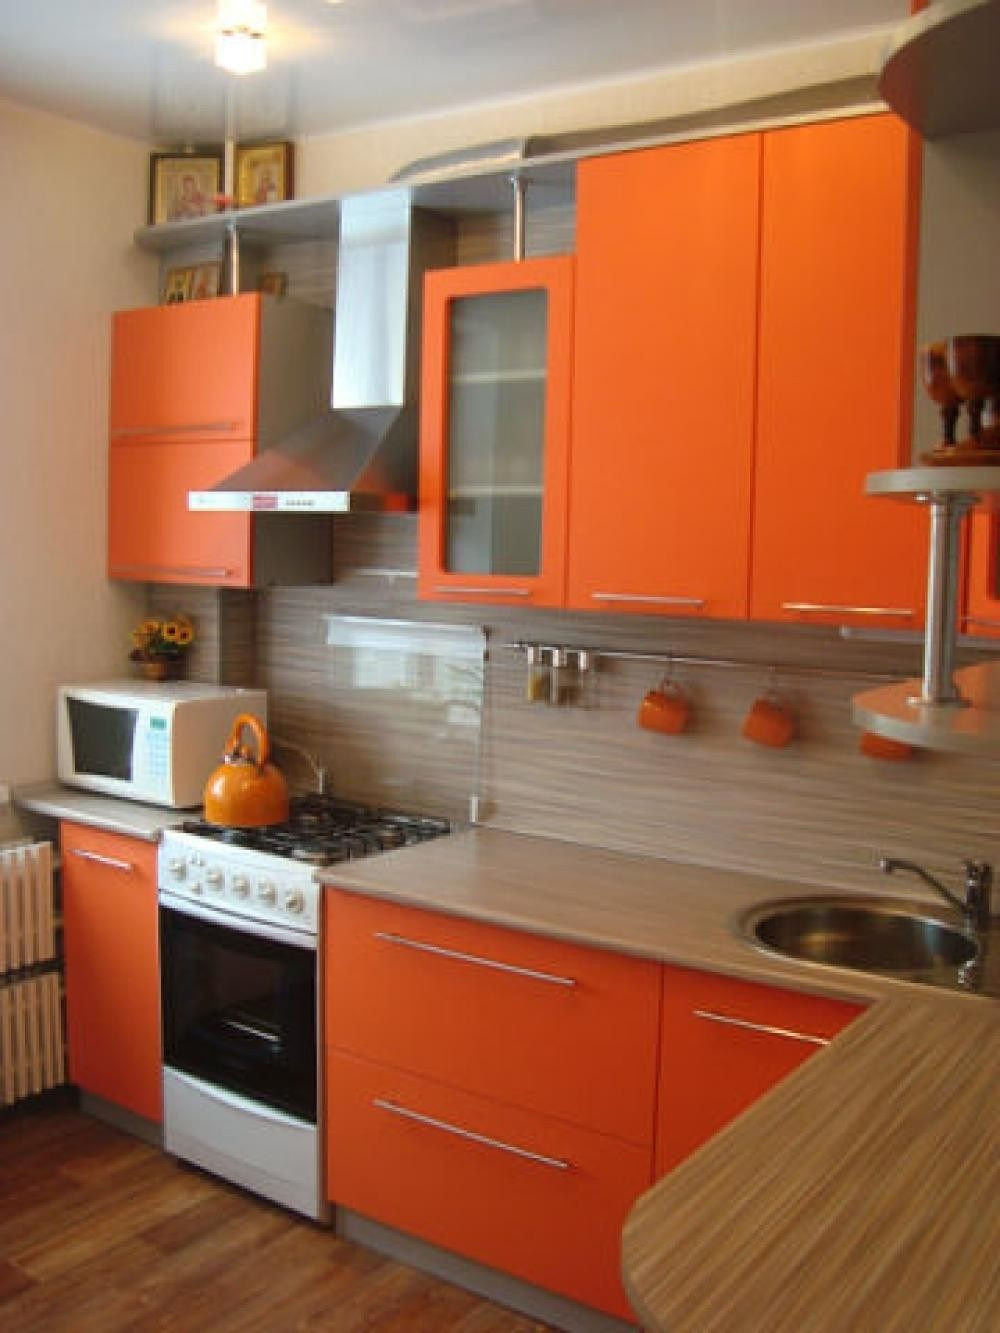 Pin By Sarah Adao On Kitchen And Toilet Orange Kitchen Walls Orange Kitchen Decor Burnt Orange Kitchen